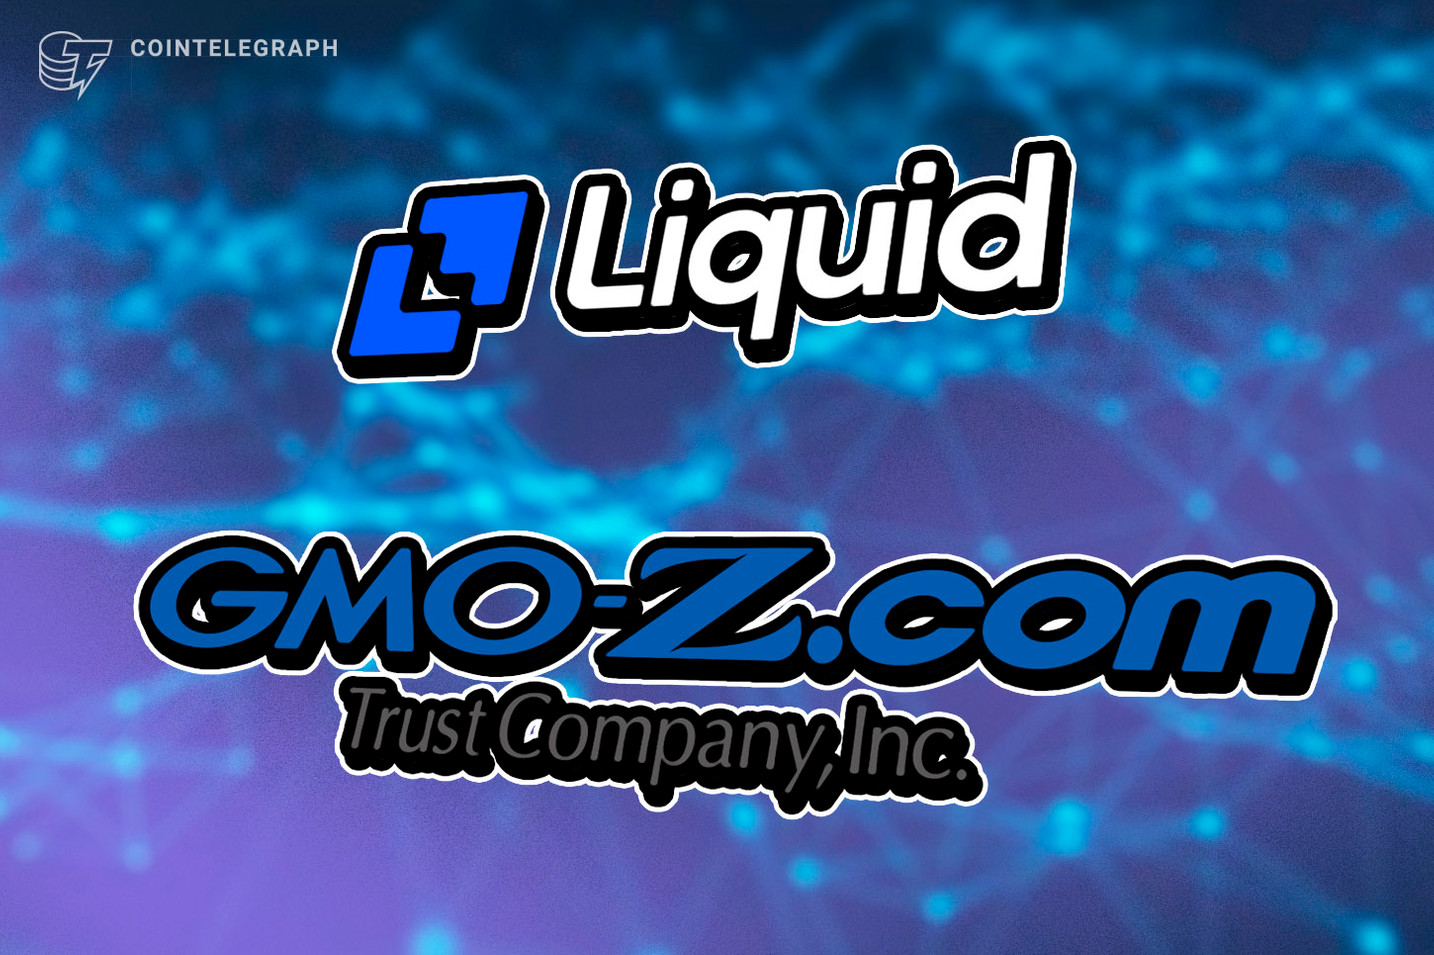 GMO Internet and Liquid partner to create the first synthetic JPY FX instruments